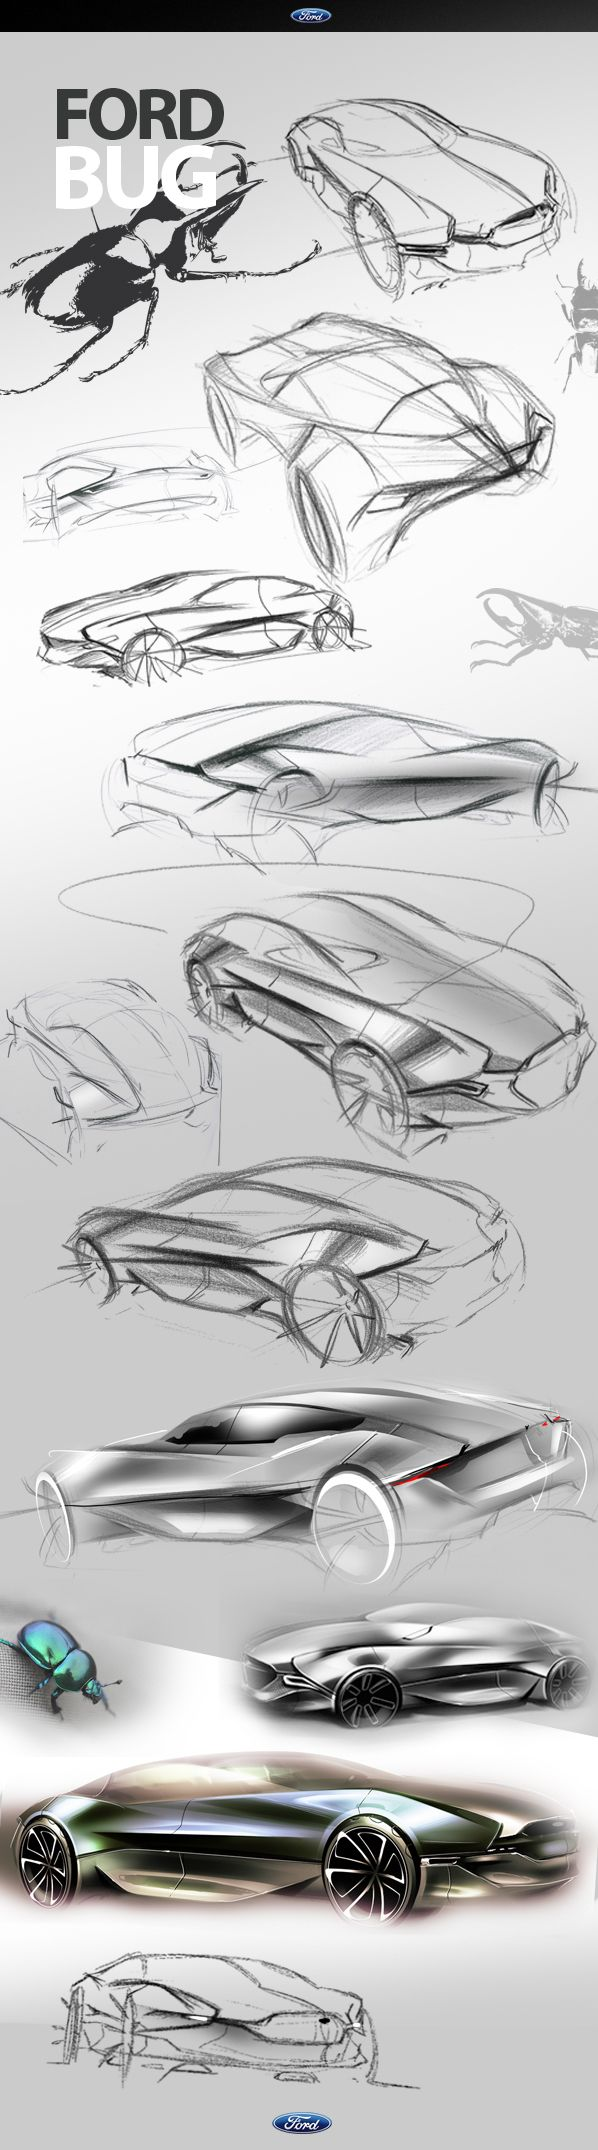 FORD BUG Concept by Jason Chen, via Behance  formal research, sketches and quick render